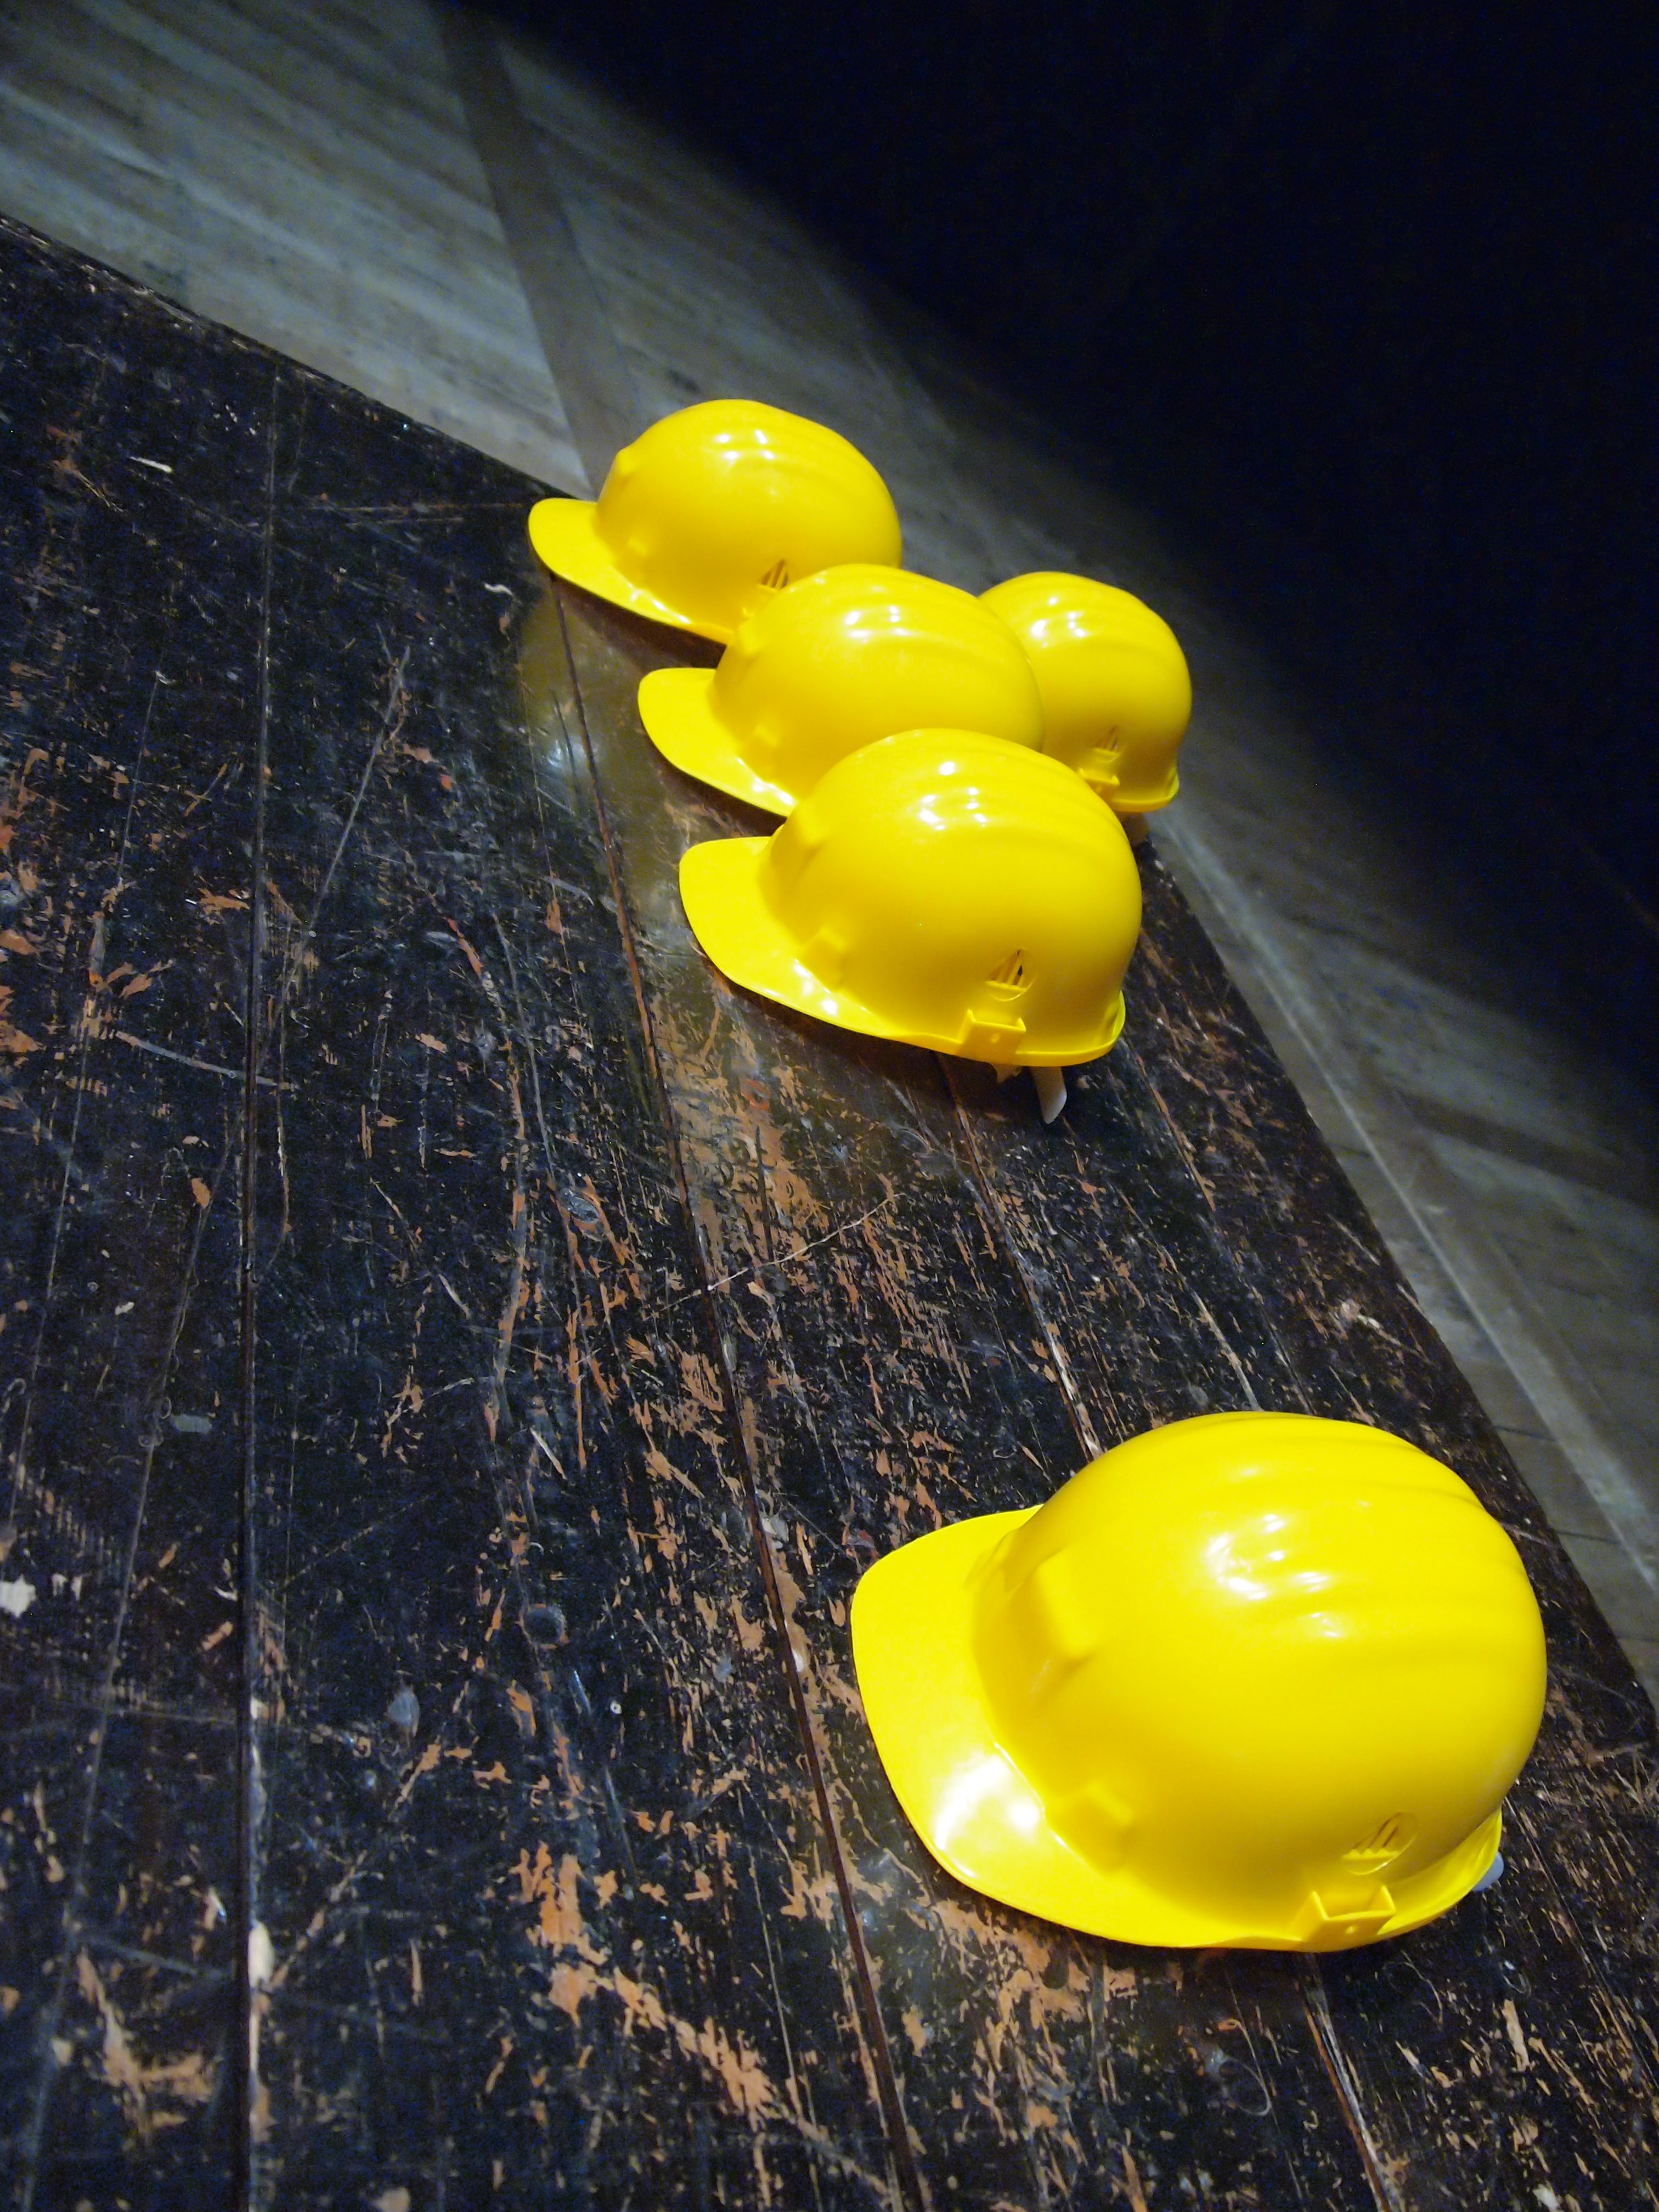 GeoCorr Pipeline Project Costs Increase Image of Yellow Construction Hats on Ground